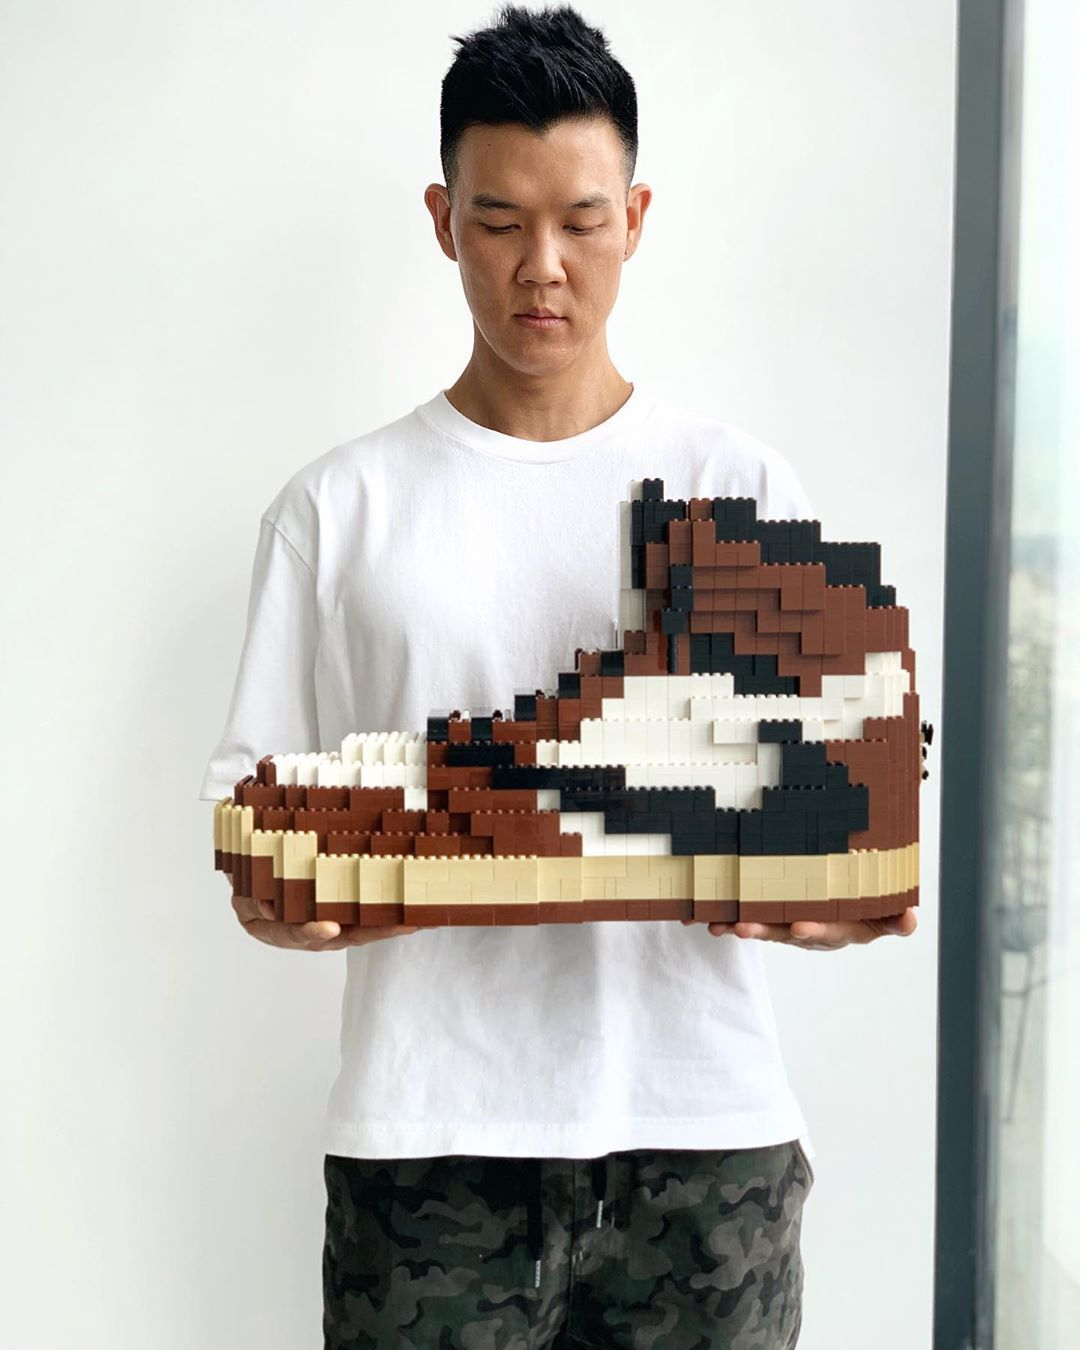 This image illustrates the work of artist Tom Yoo.A lego recomposition of the iconic 1985 Jordan 1 Chicago worn by Micheal Jordan.